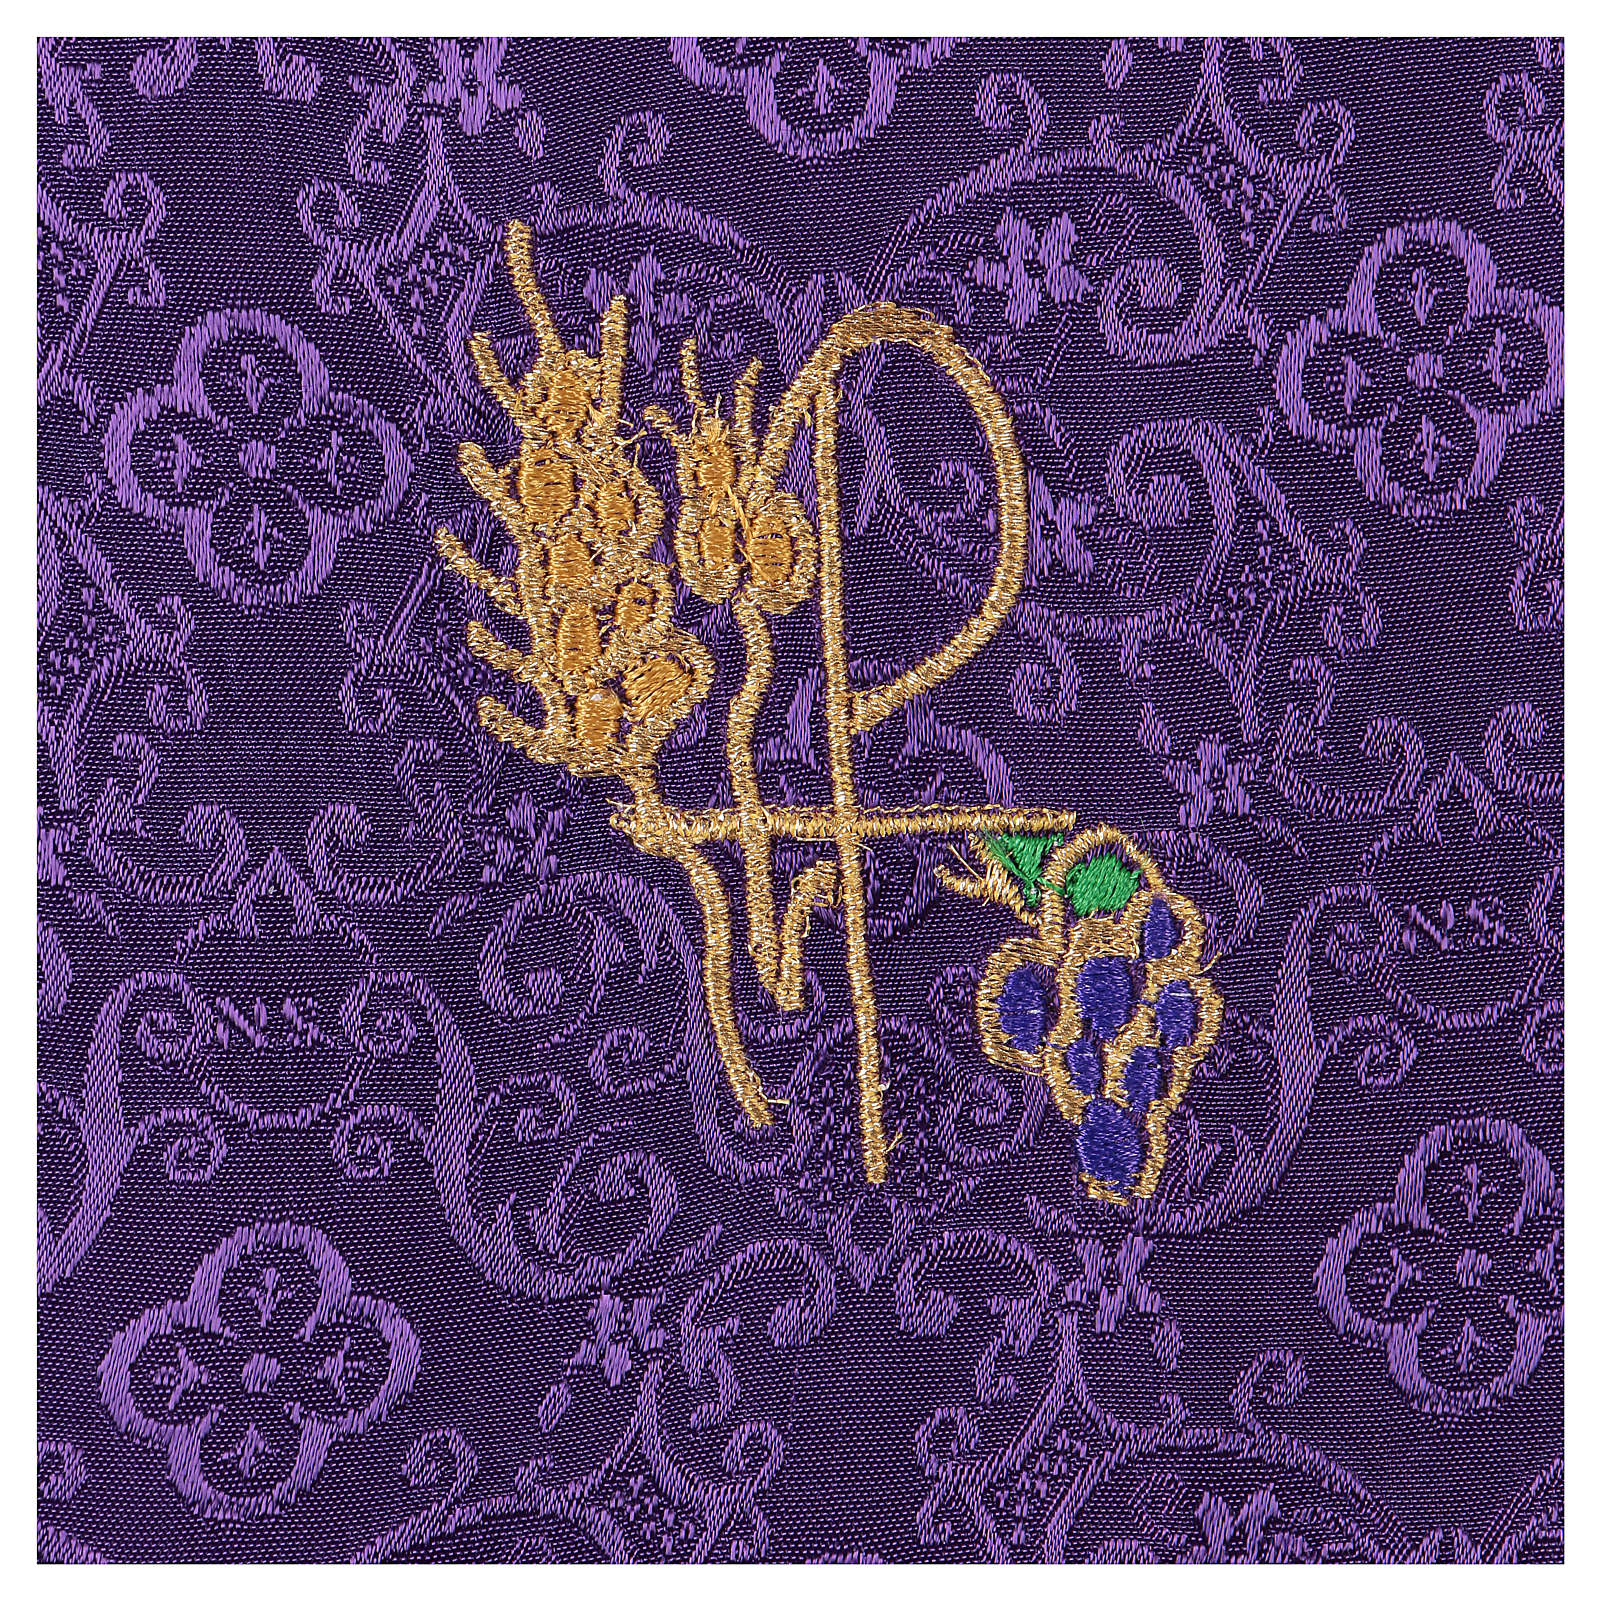 Chalice veil (pall) with Xp, wheat and grapes embroidery on purple jacquard fabric 4